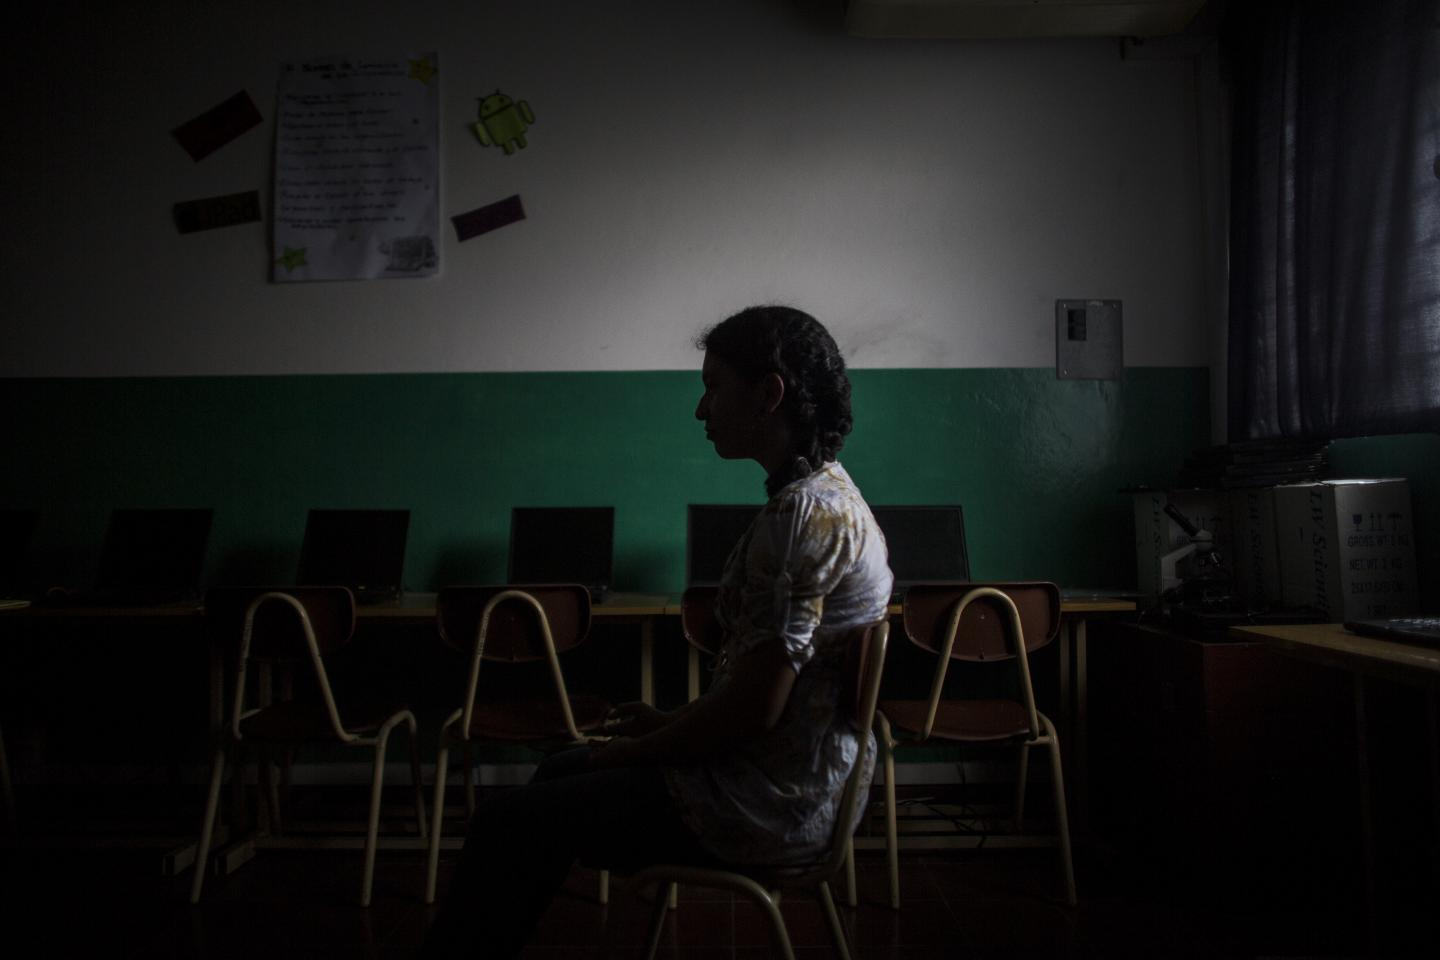 13 Reasons Why We Need To End Violence In Schools Unicef